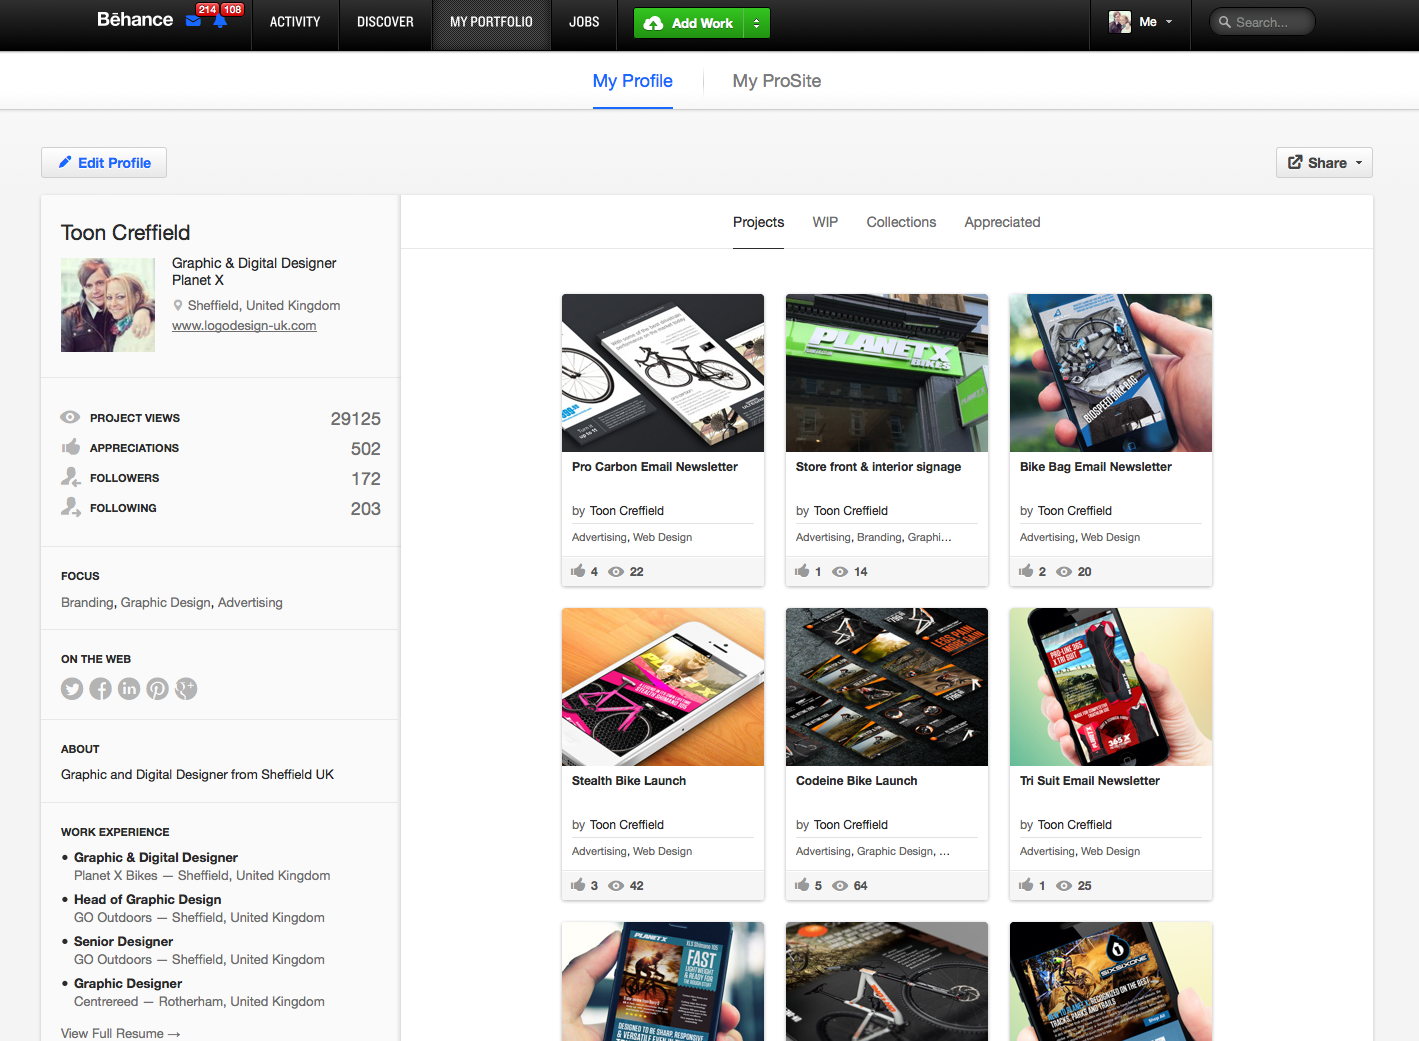 Behance Network :: Creative Portfolios, Projects, and Collaborations